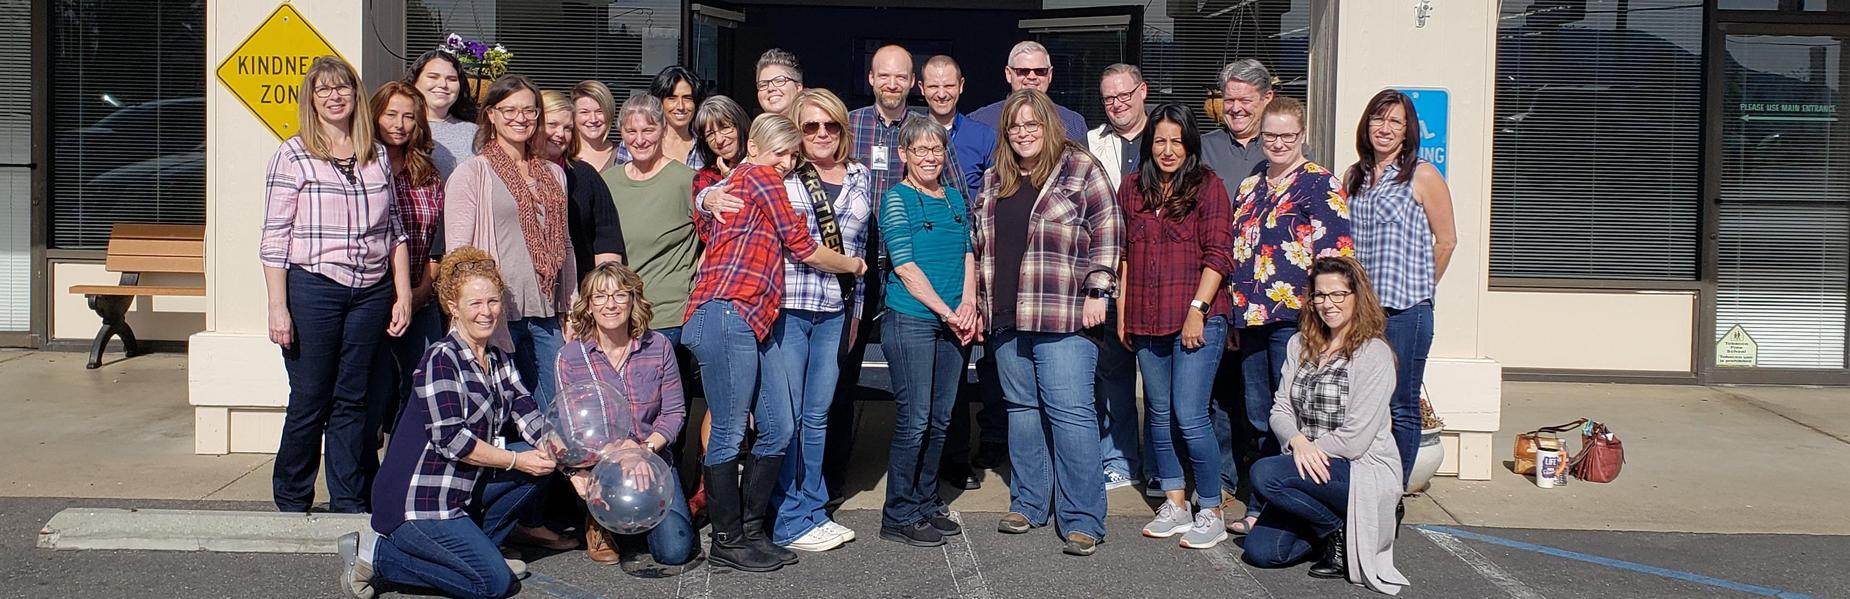 Flannel Friday Beth's Retirement Group Photo